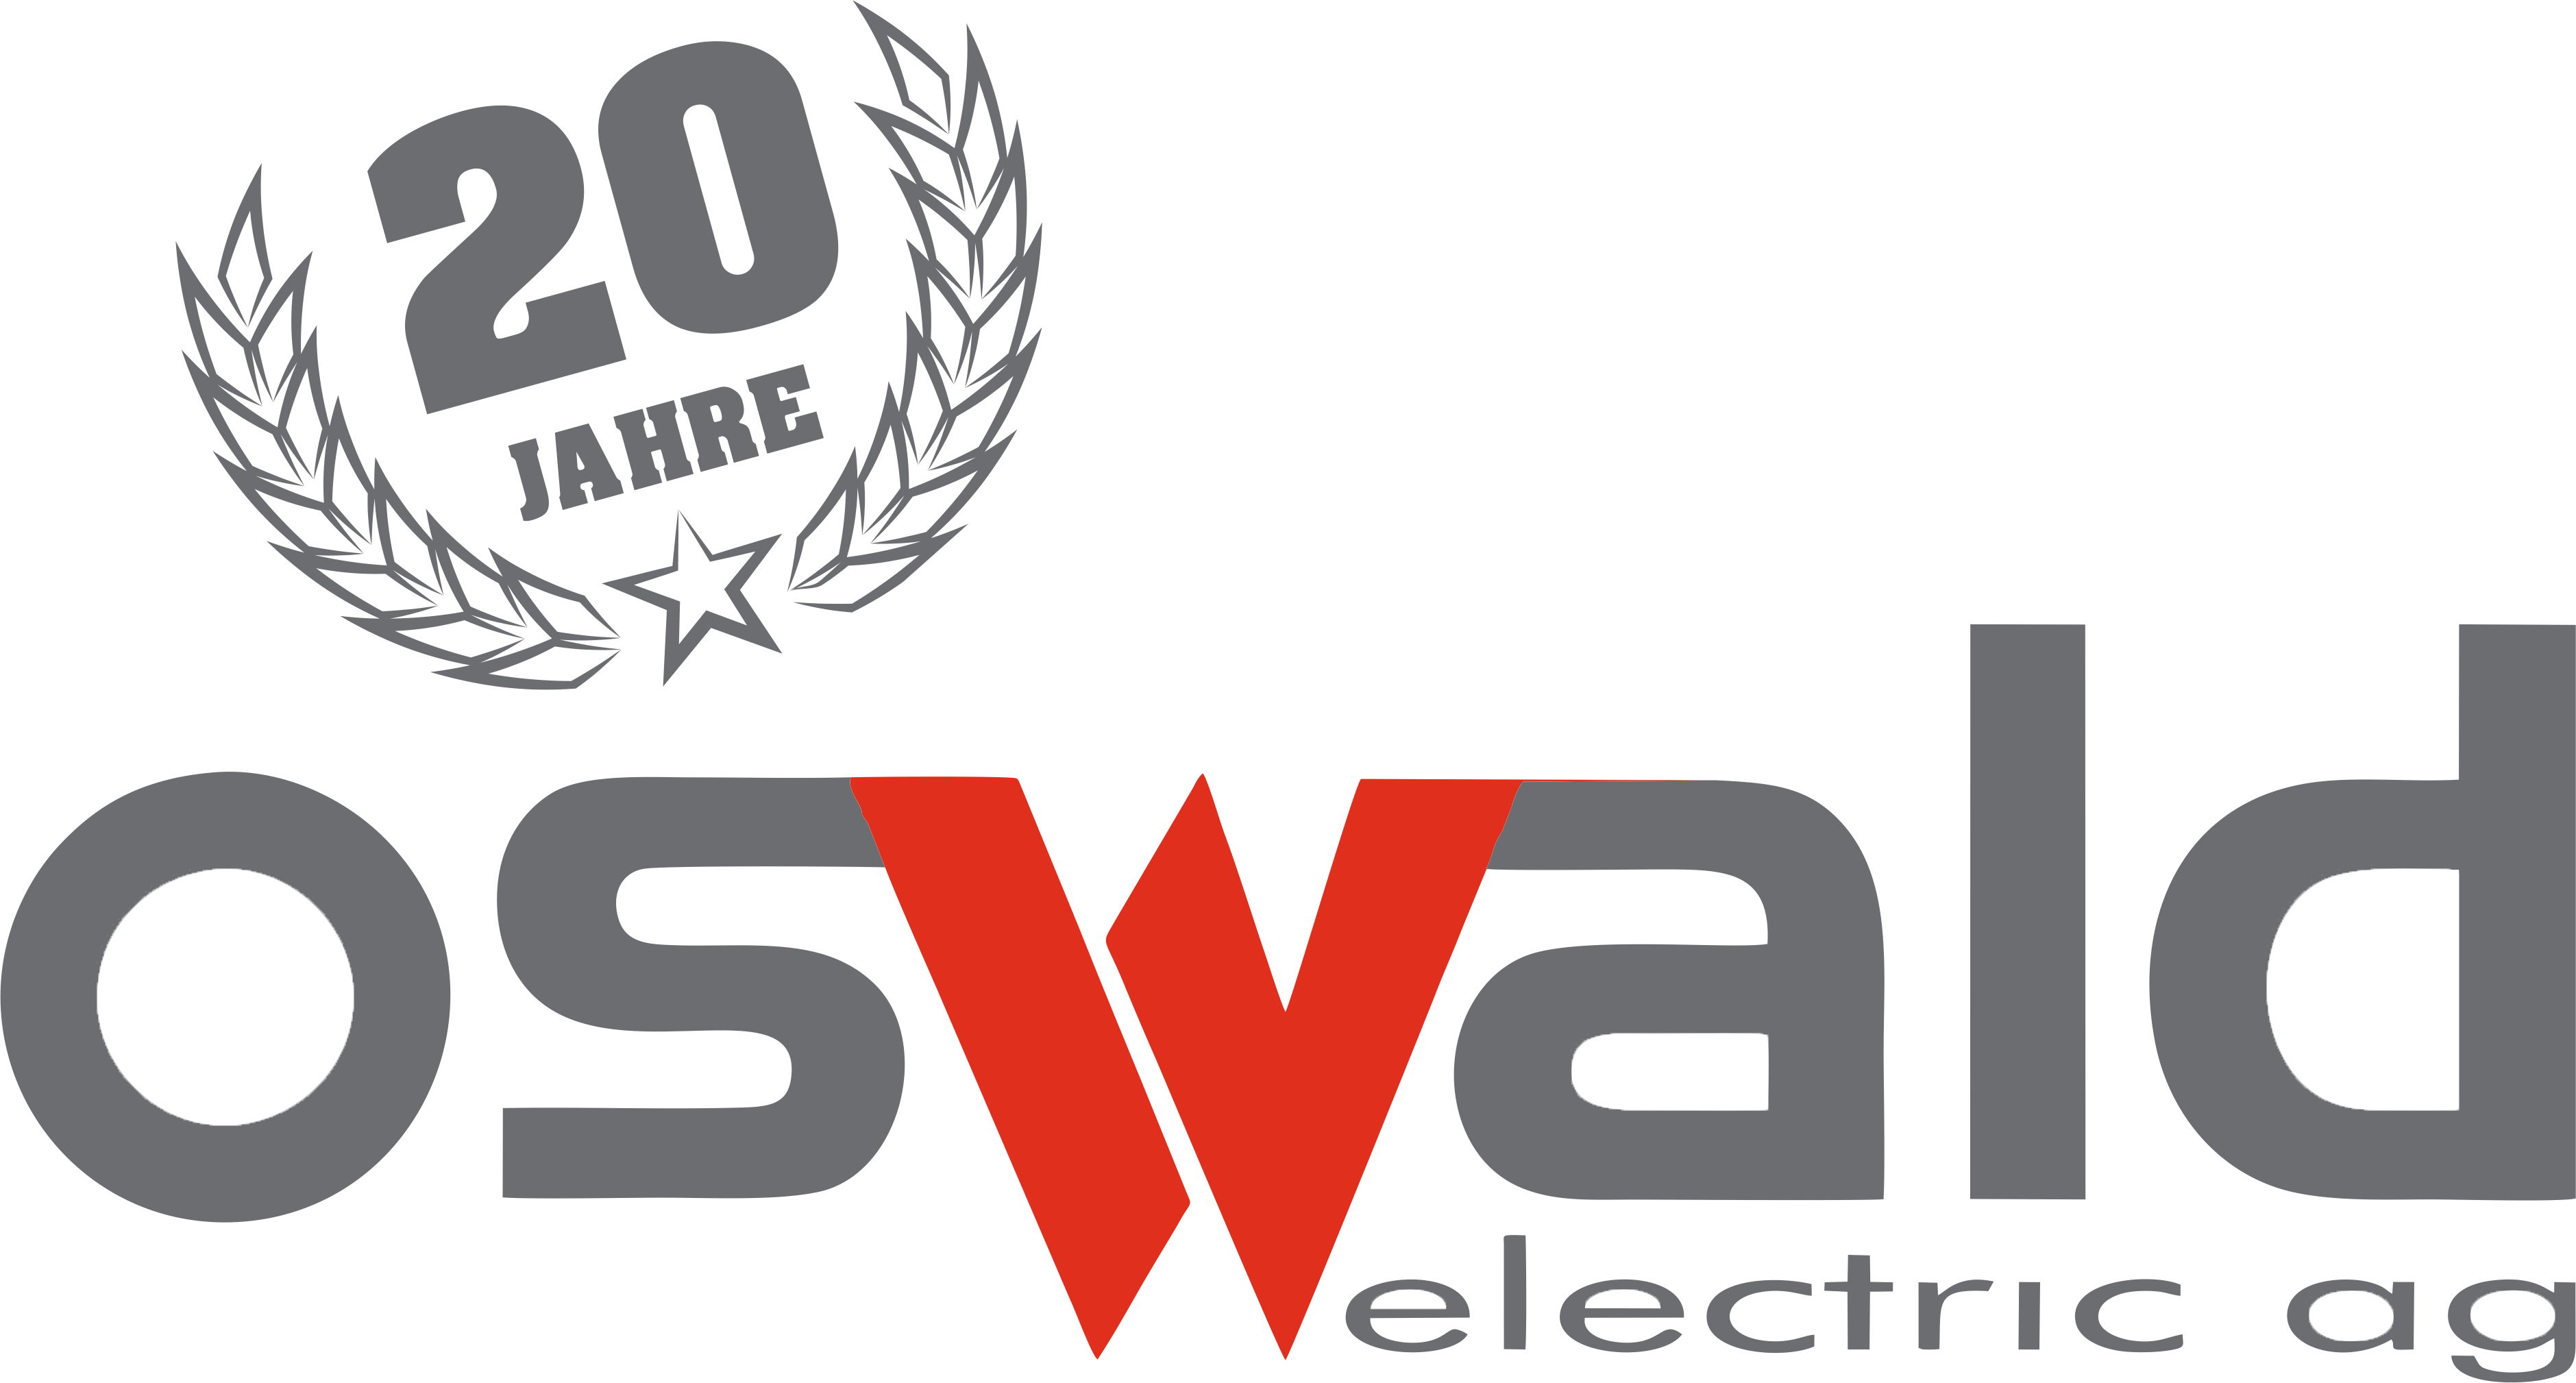 20  Jahre Oswald Electric AG